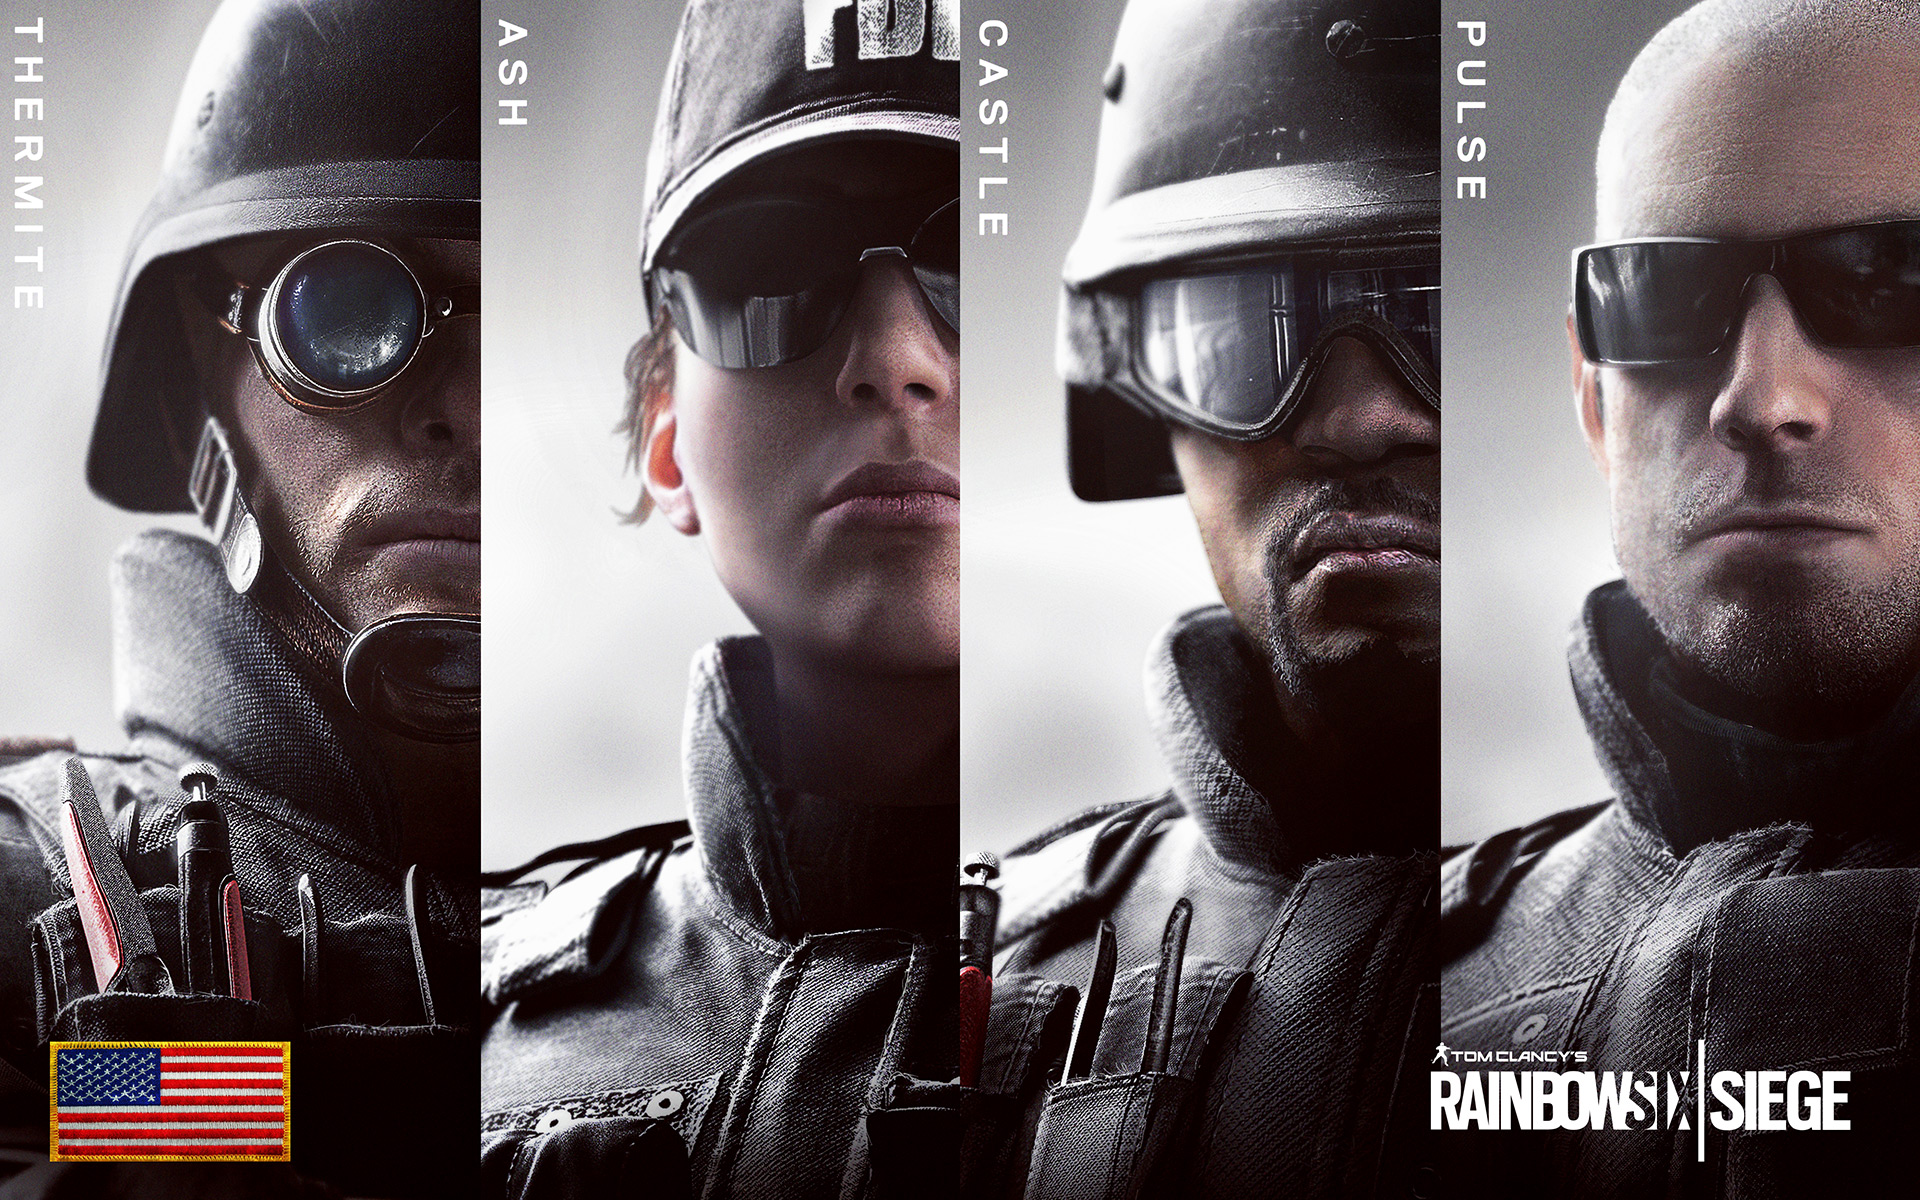 Rainbow Six Siege Wallpaper Hd: Tom Clancy's Rainbow Six: Siege Wallpapers, Pictures, Images